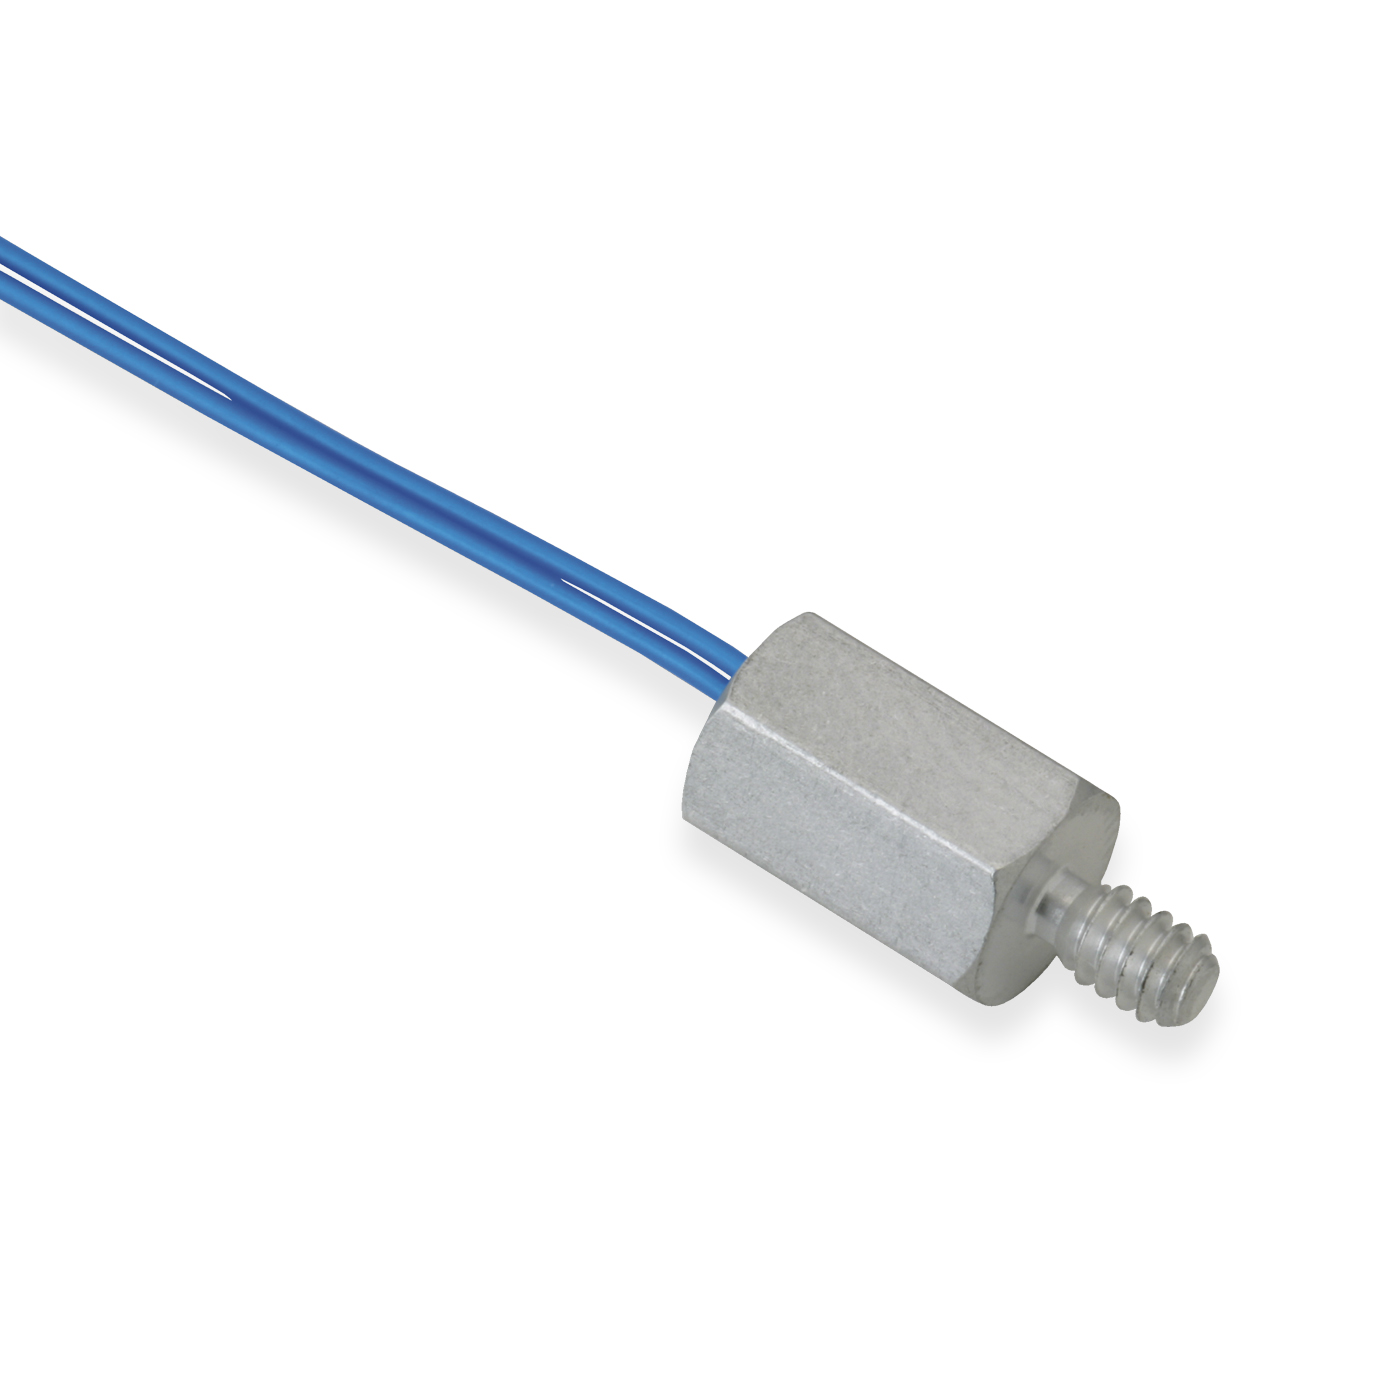 H3123 Series - Surface Temperature Sensor Housings